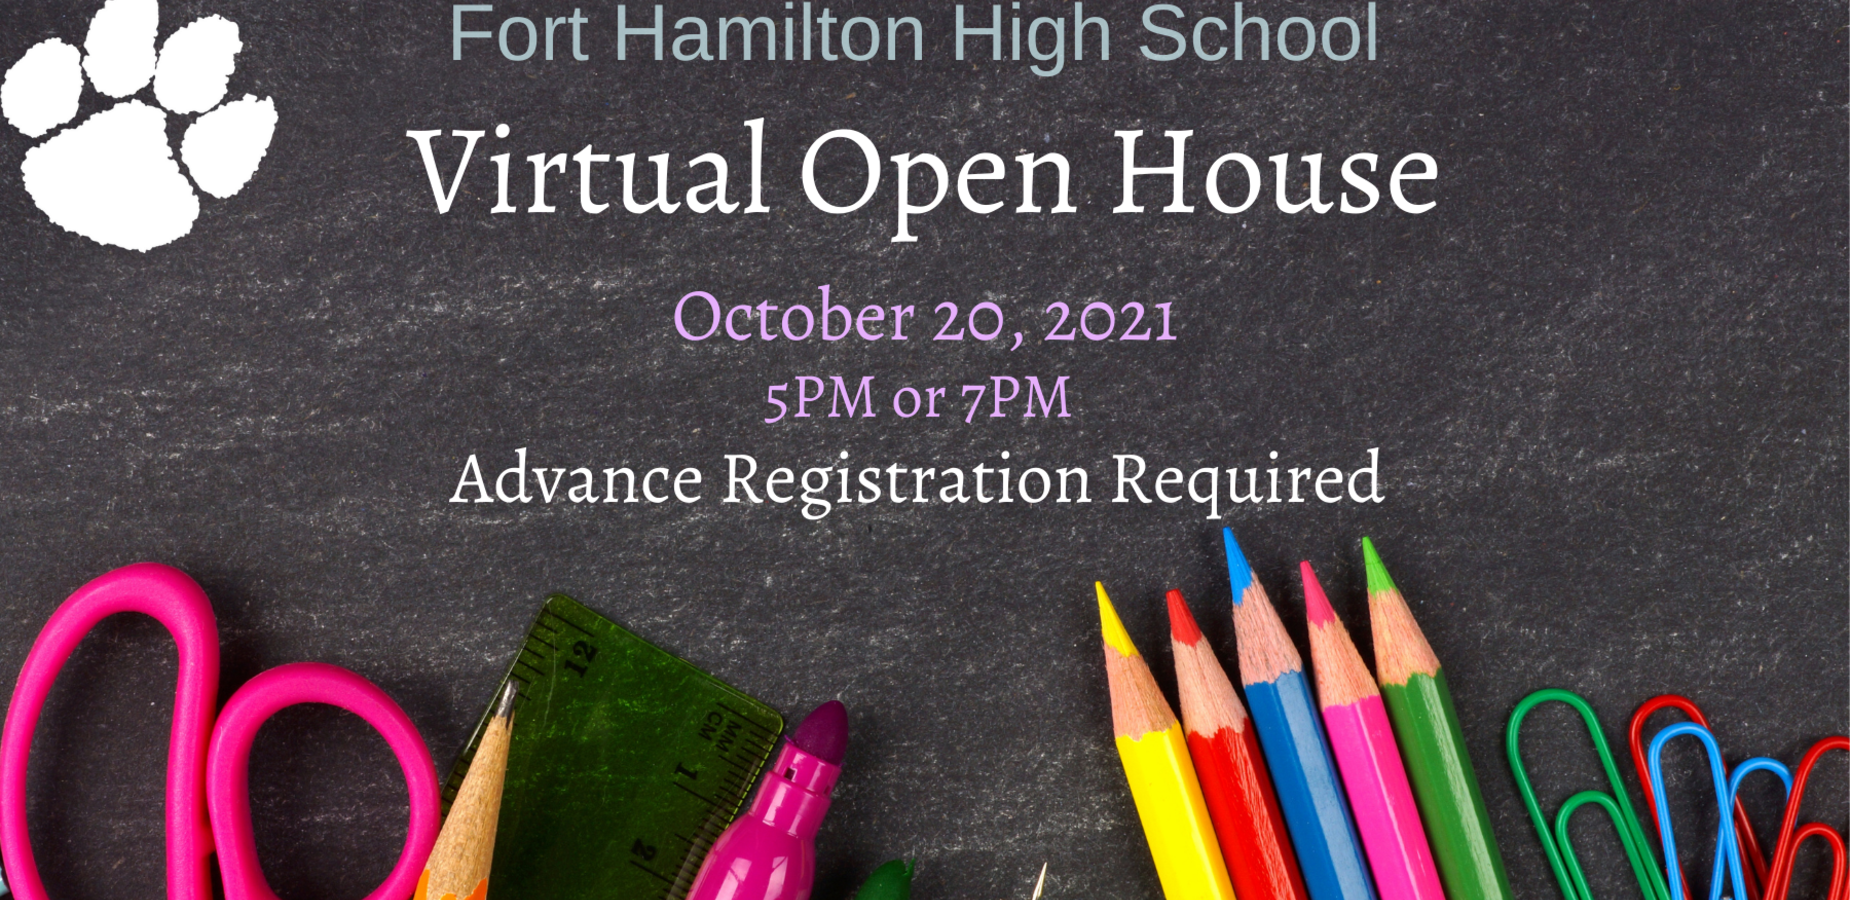 Fort Hamilton High School Virtual Open House. October 20, 2021. 5pm or 7pm. Advance Registration Required. Background is a blackboard with a pink scissor and various colored pencils. There is a white tiger paw in the upper left corner